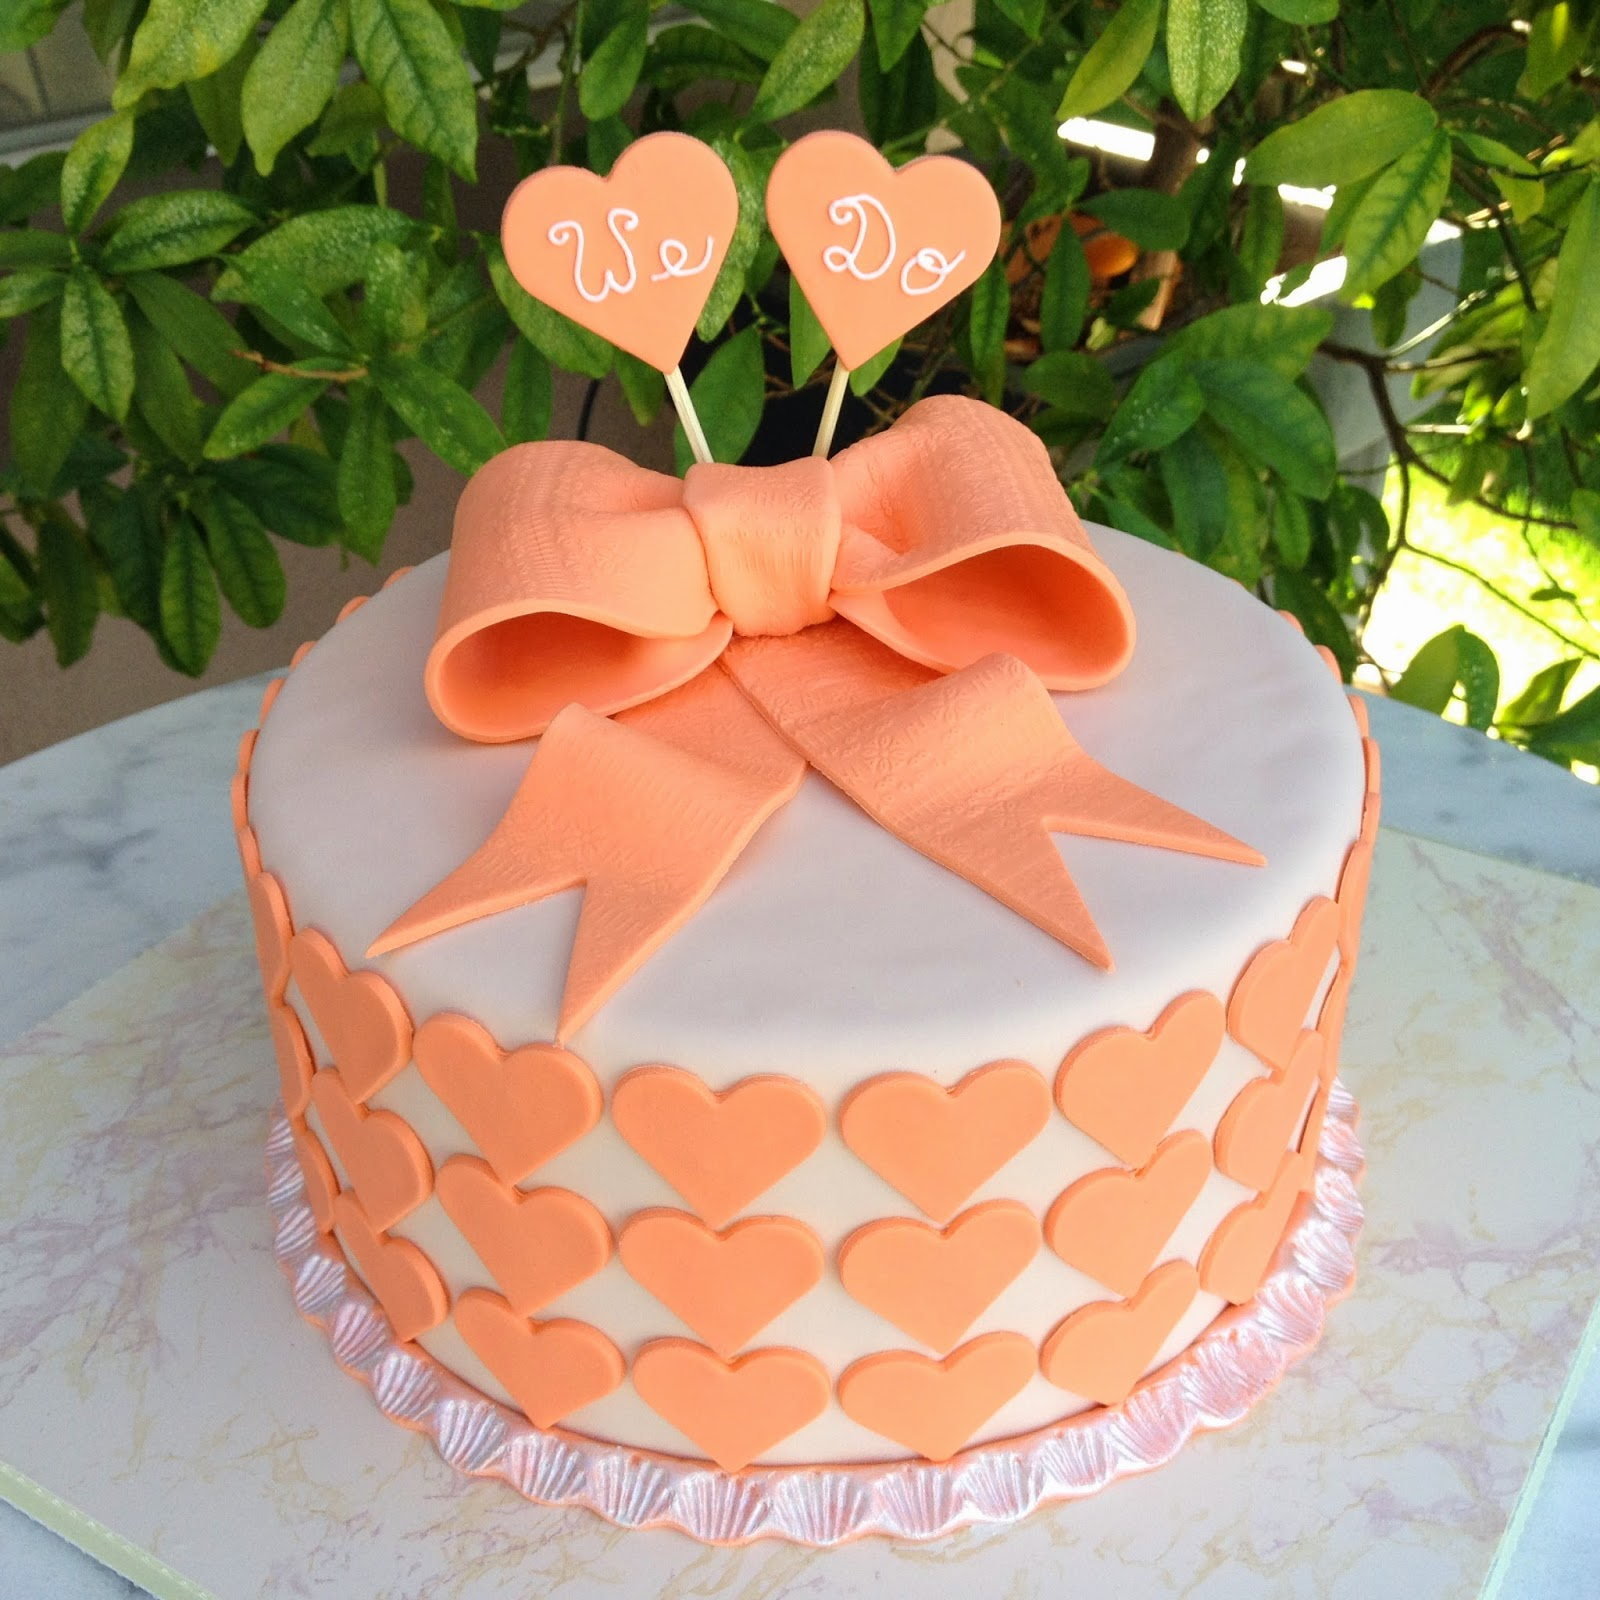 6.Simple Engagement Party  Cake